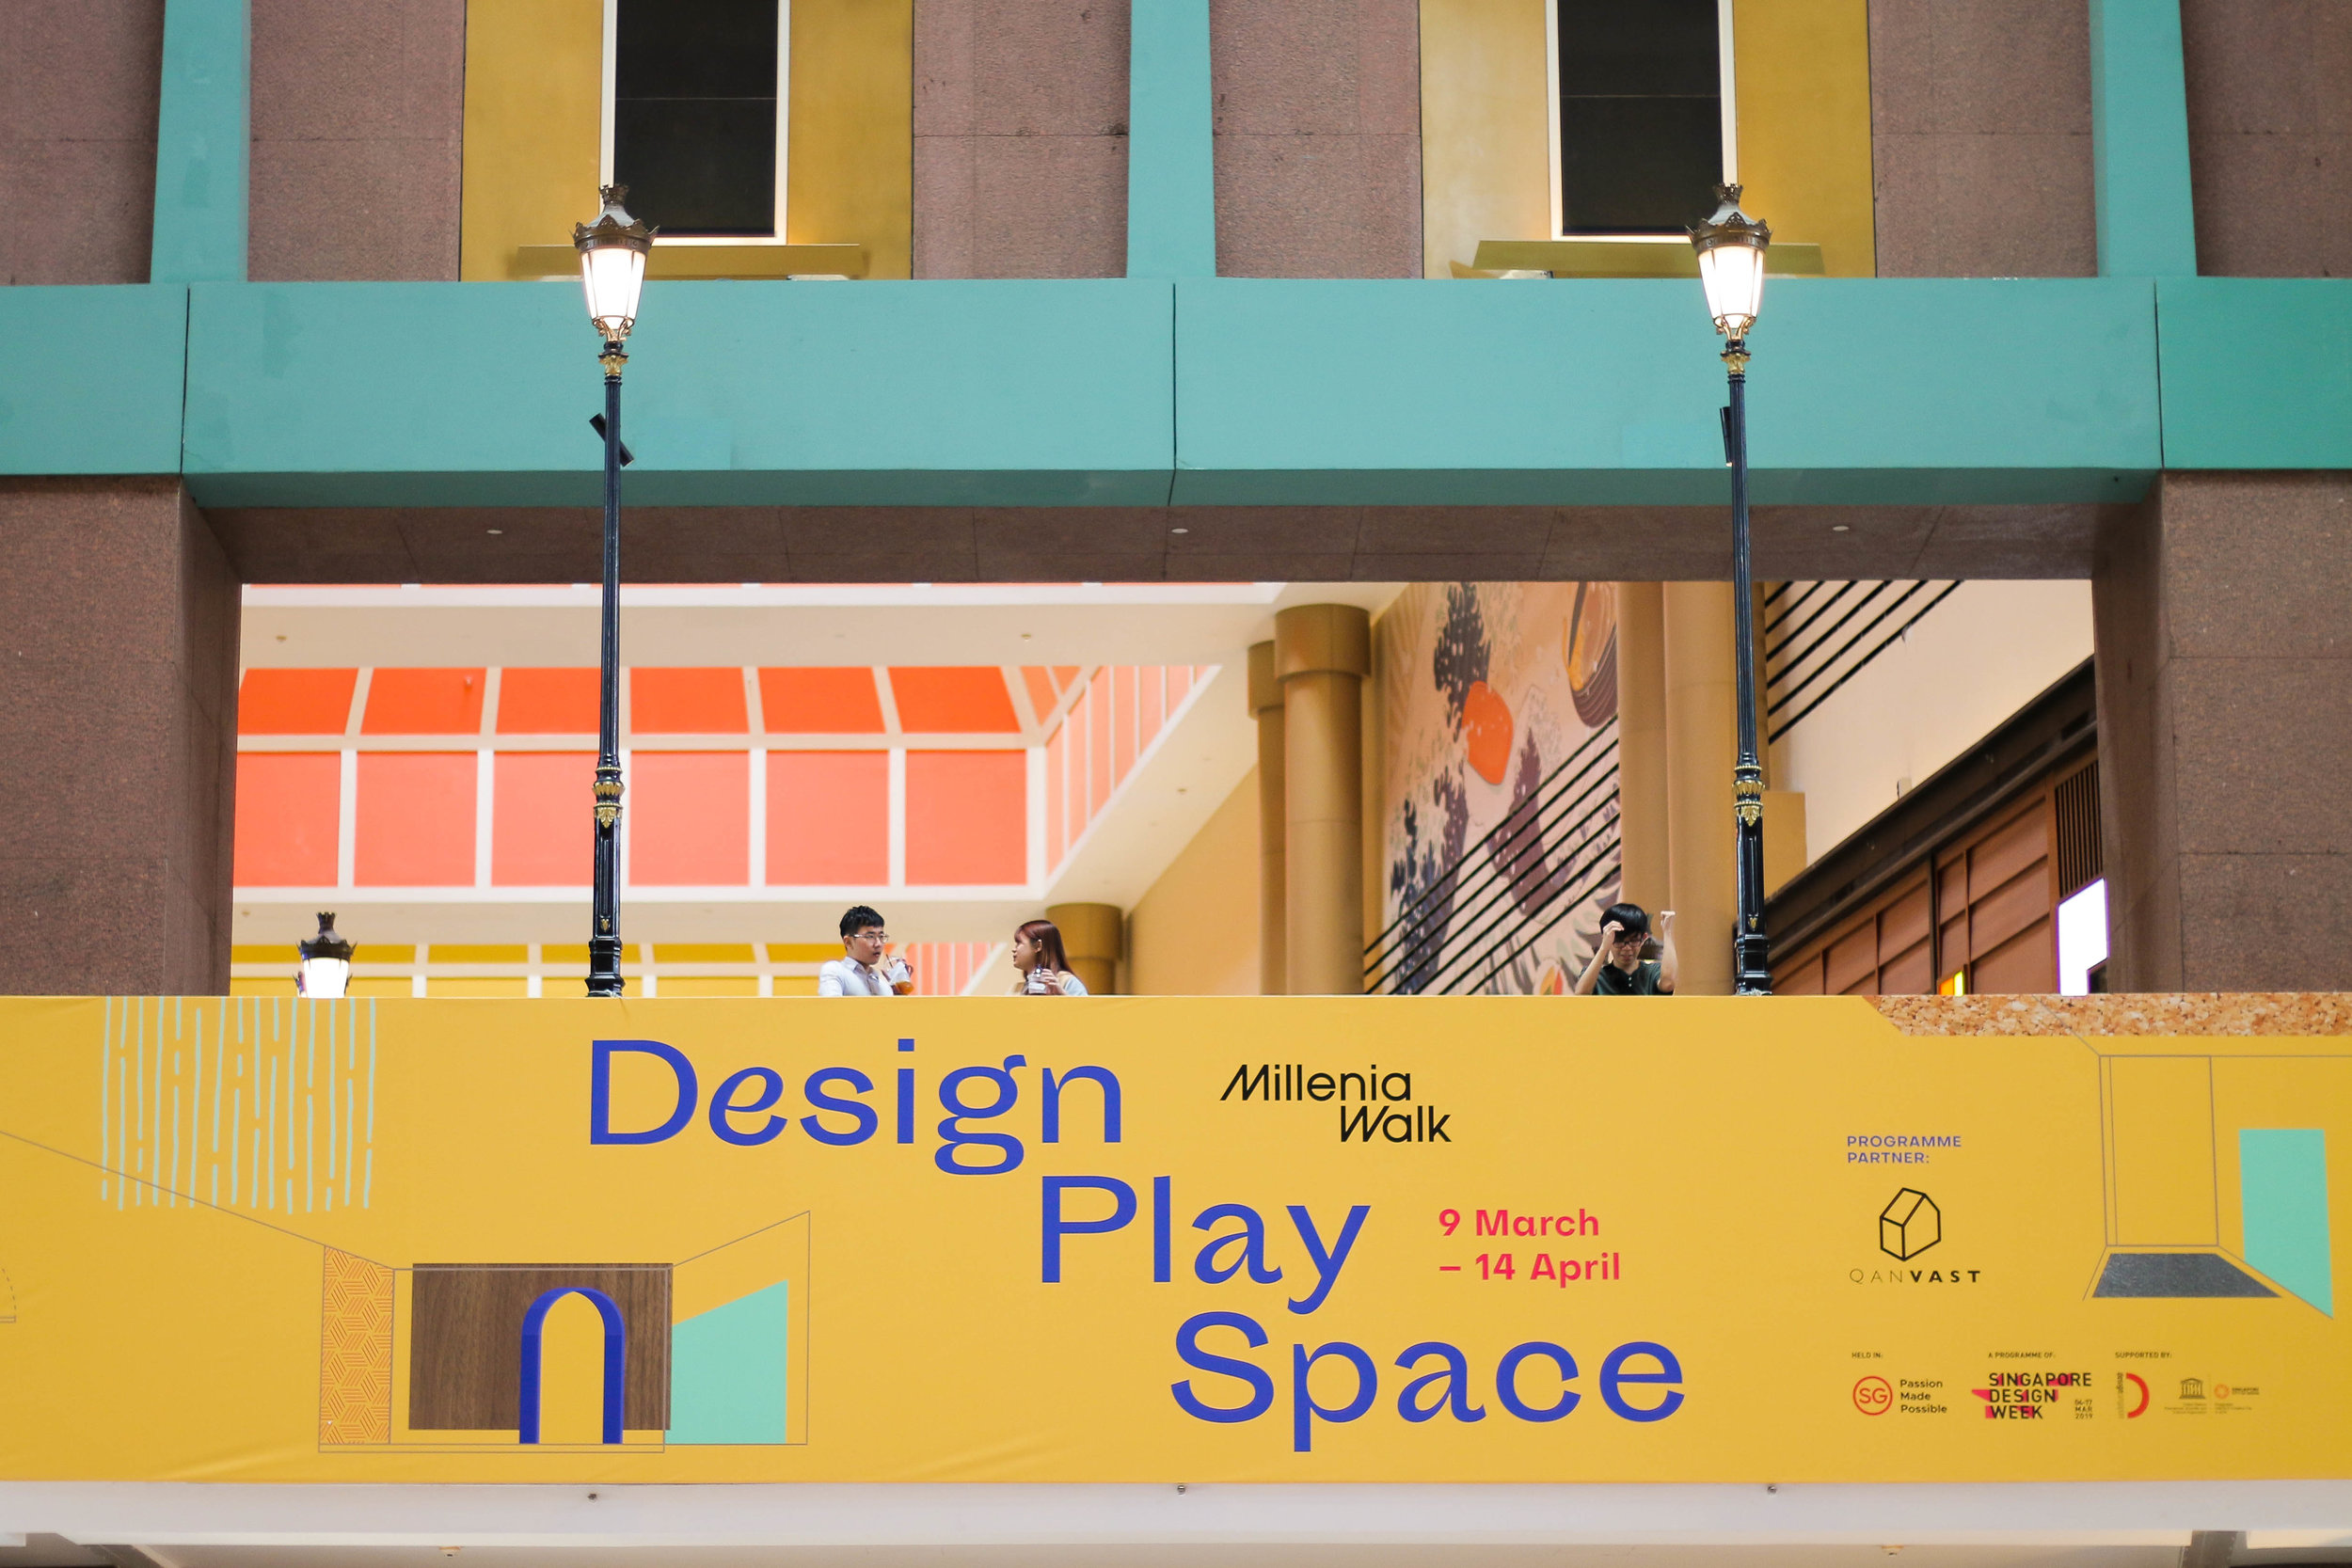 outeredit - millenia walk design play space - great hall